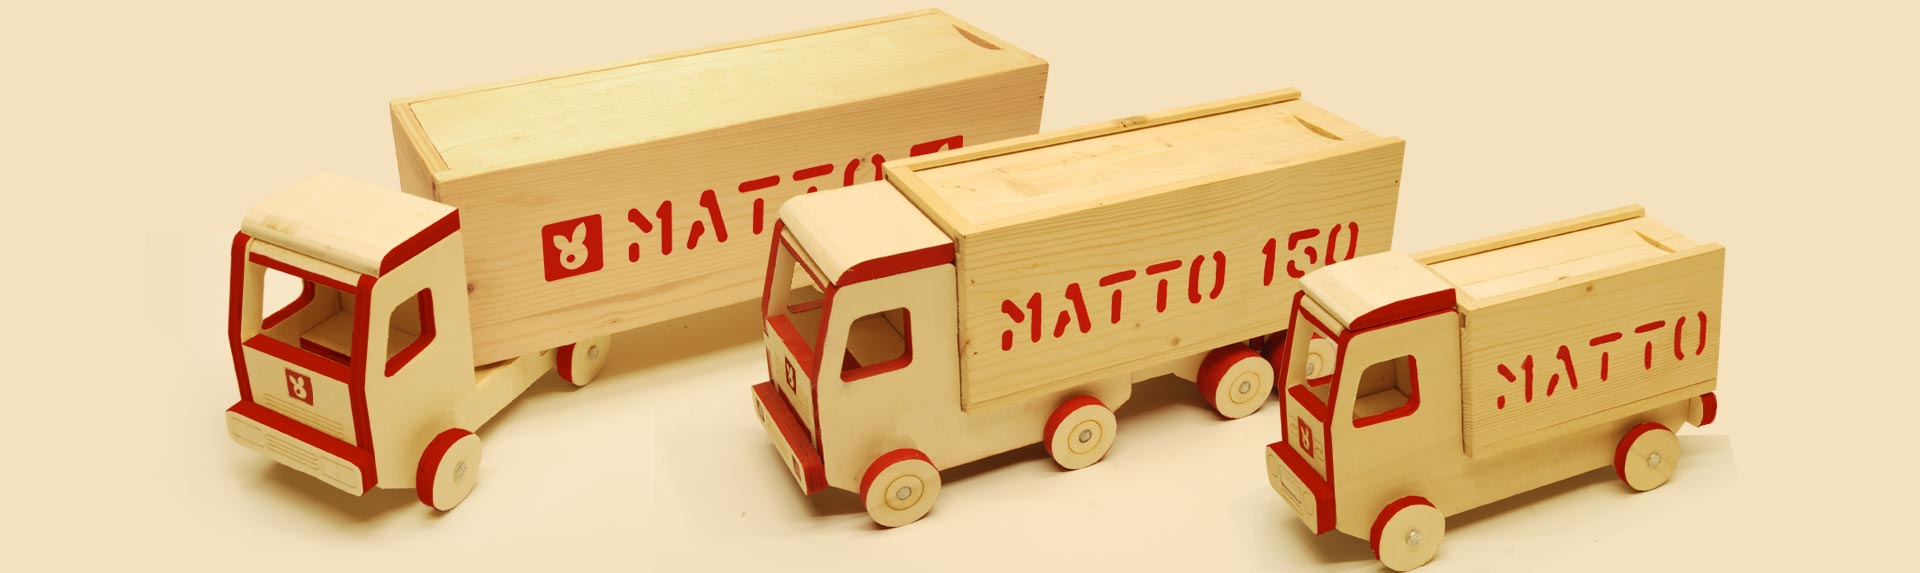 slide matto camioncini team gioco educativo